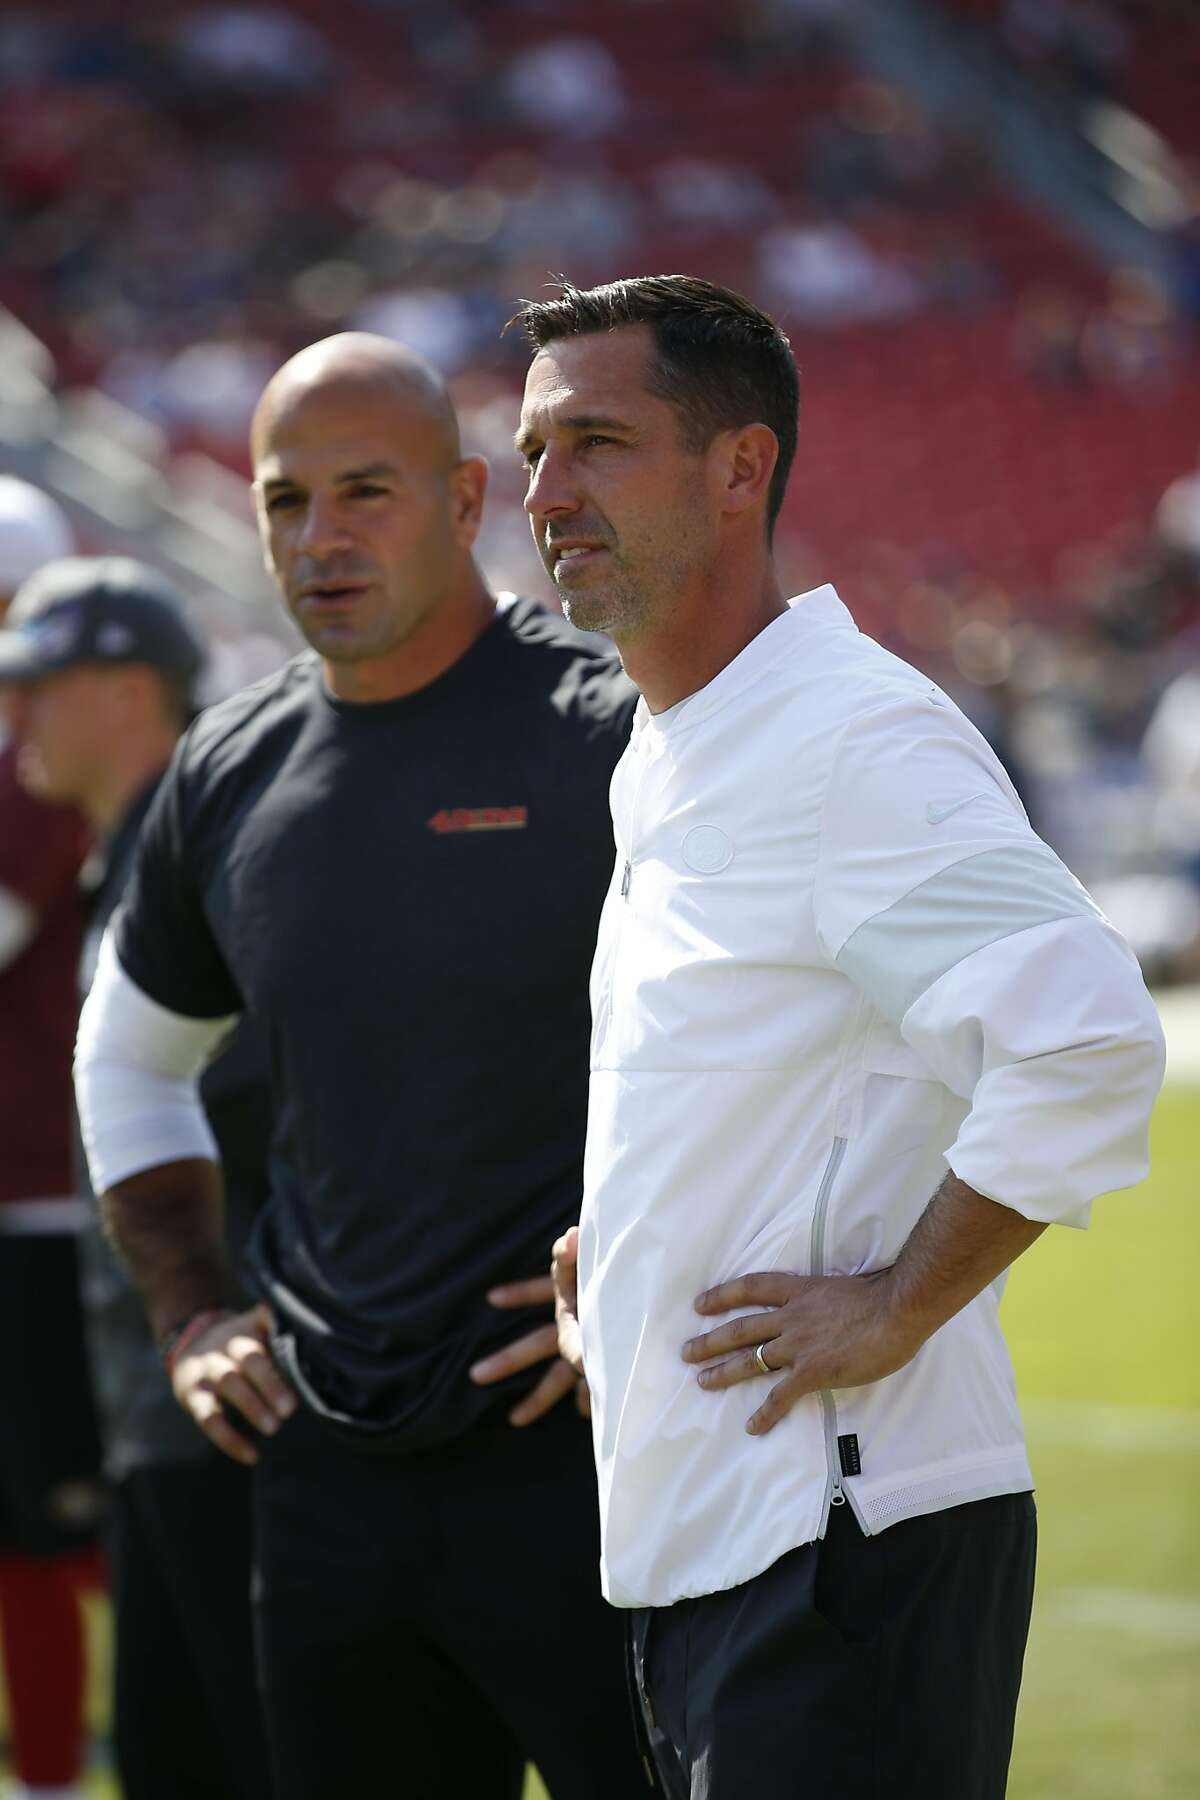 LOS ANGELES, CA - OCTOBER 13: Defensive Coordinator Robert Saleh and Head Coach Kyle Shanahan of the San Francisco 49ers stand on the field prior to the game against the Los Angeles Rams at the Los Angeles Memorial Coliseum on October 13, 2019 in Los Ange